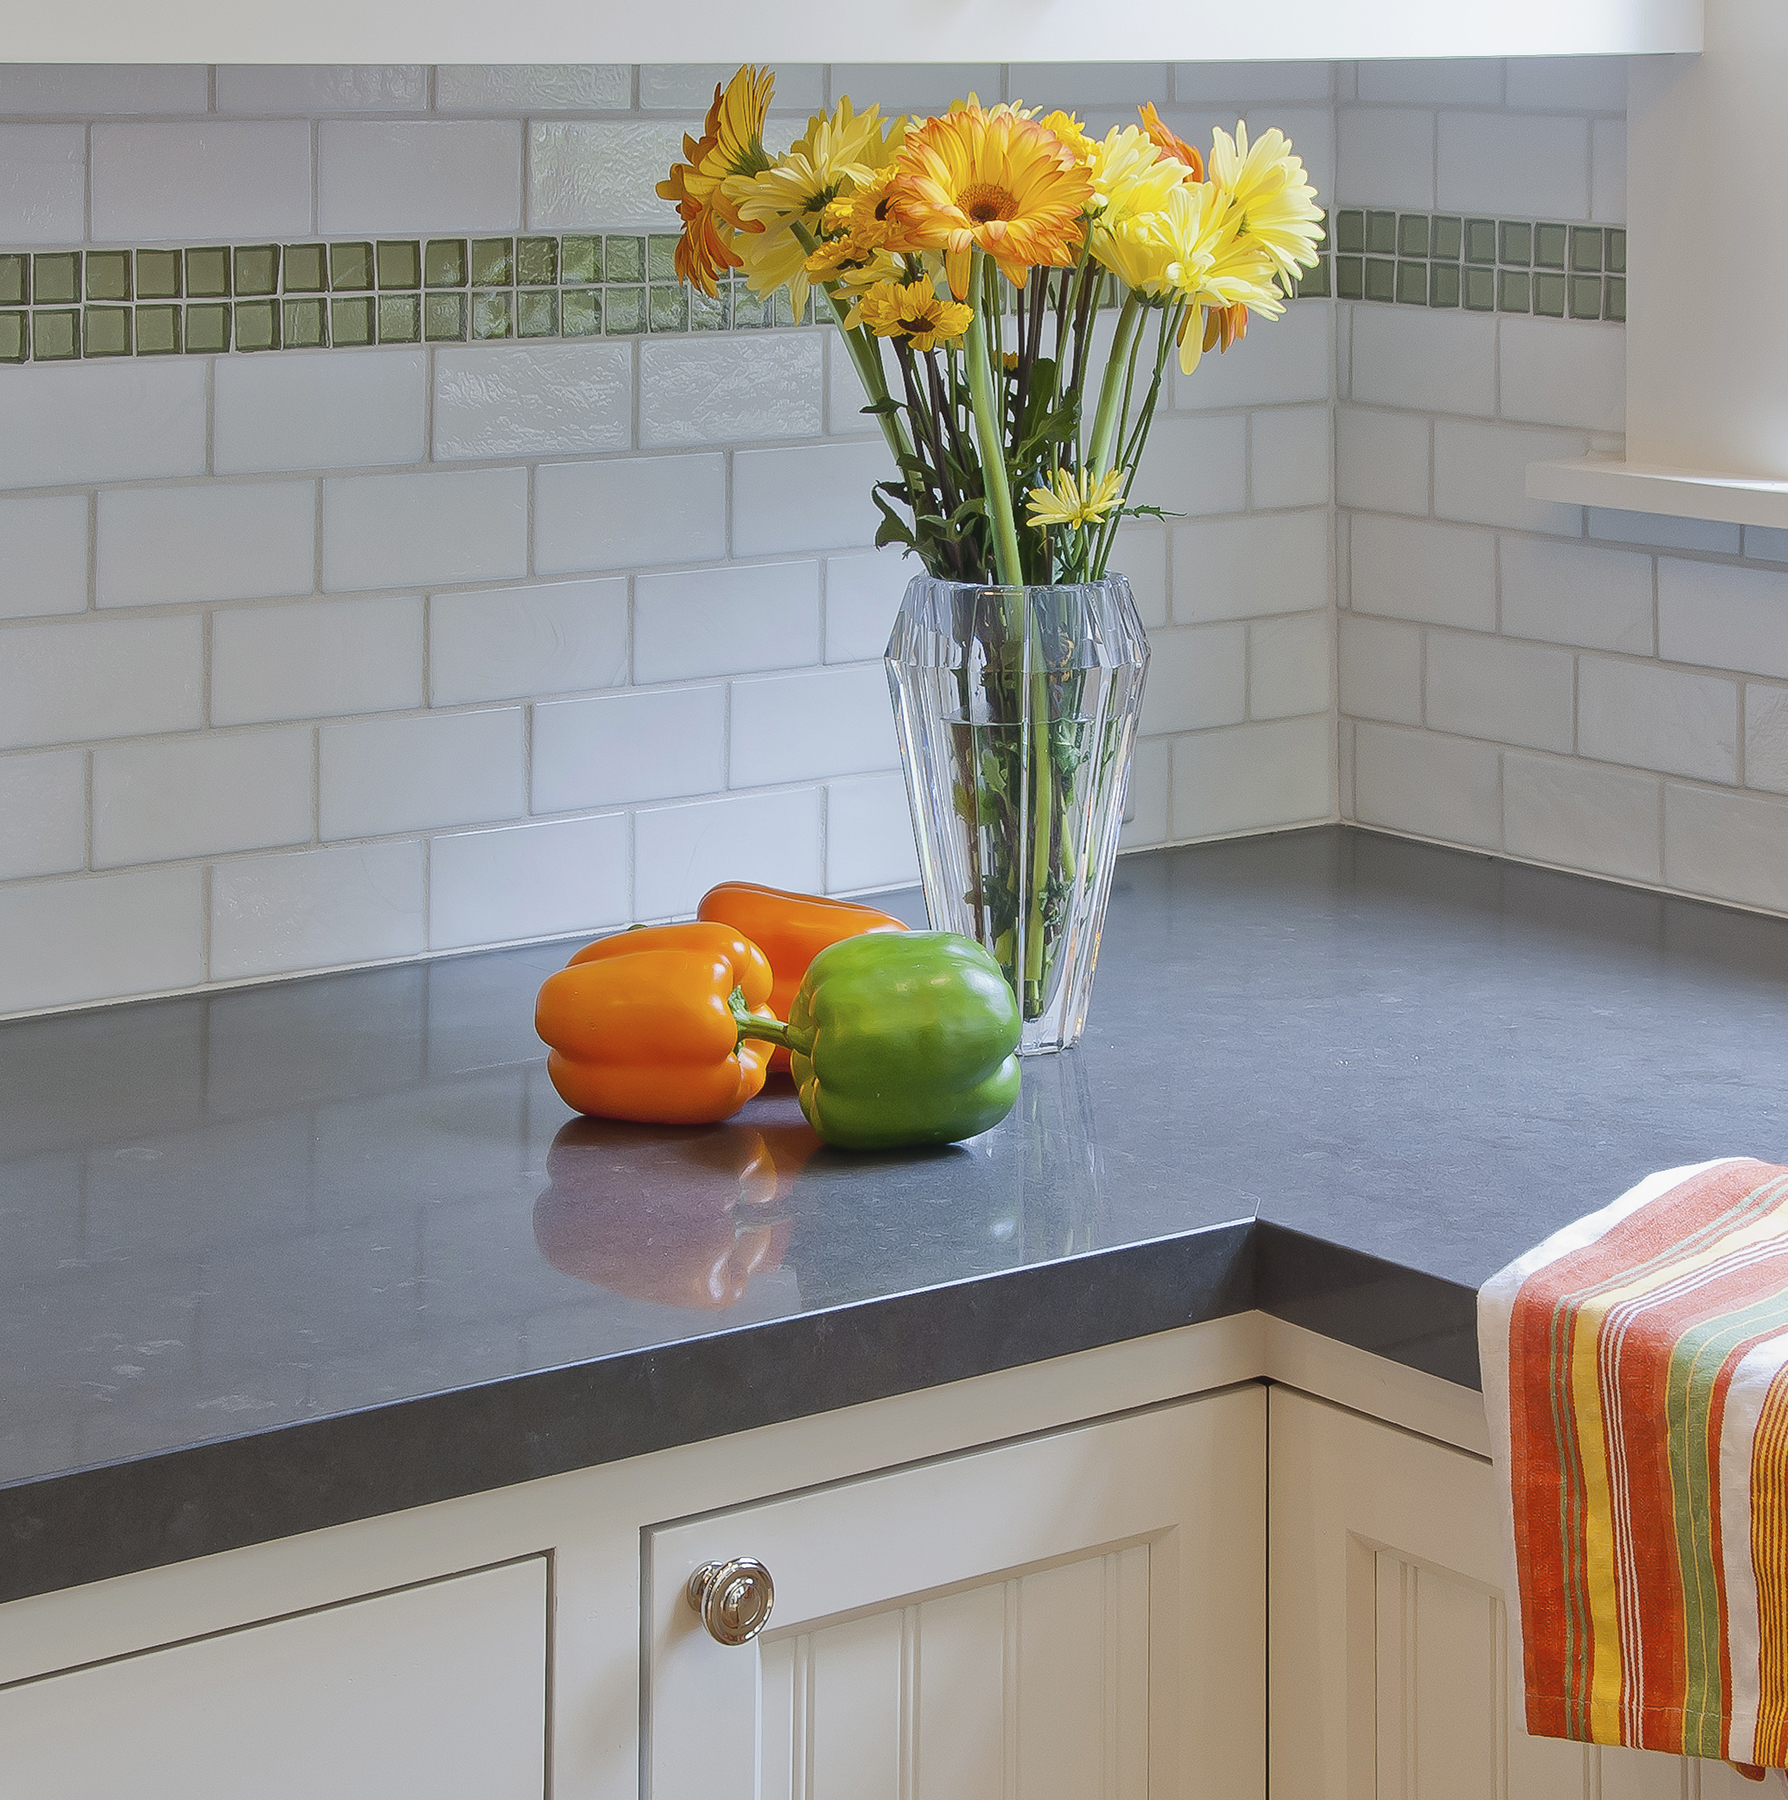 Counter with flowers and tile backsplash